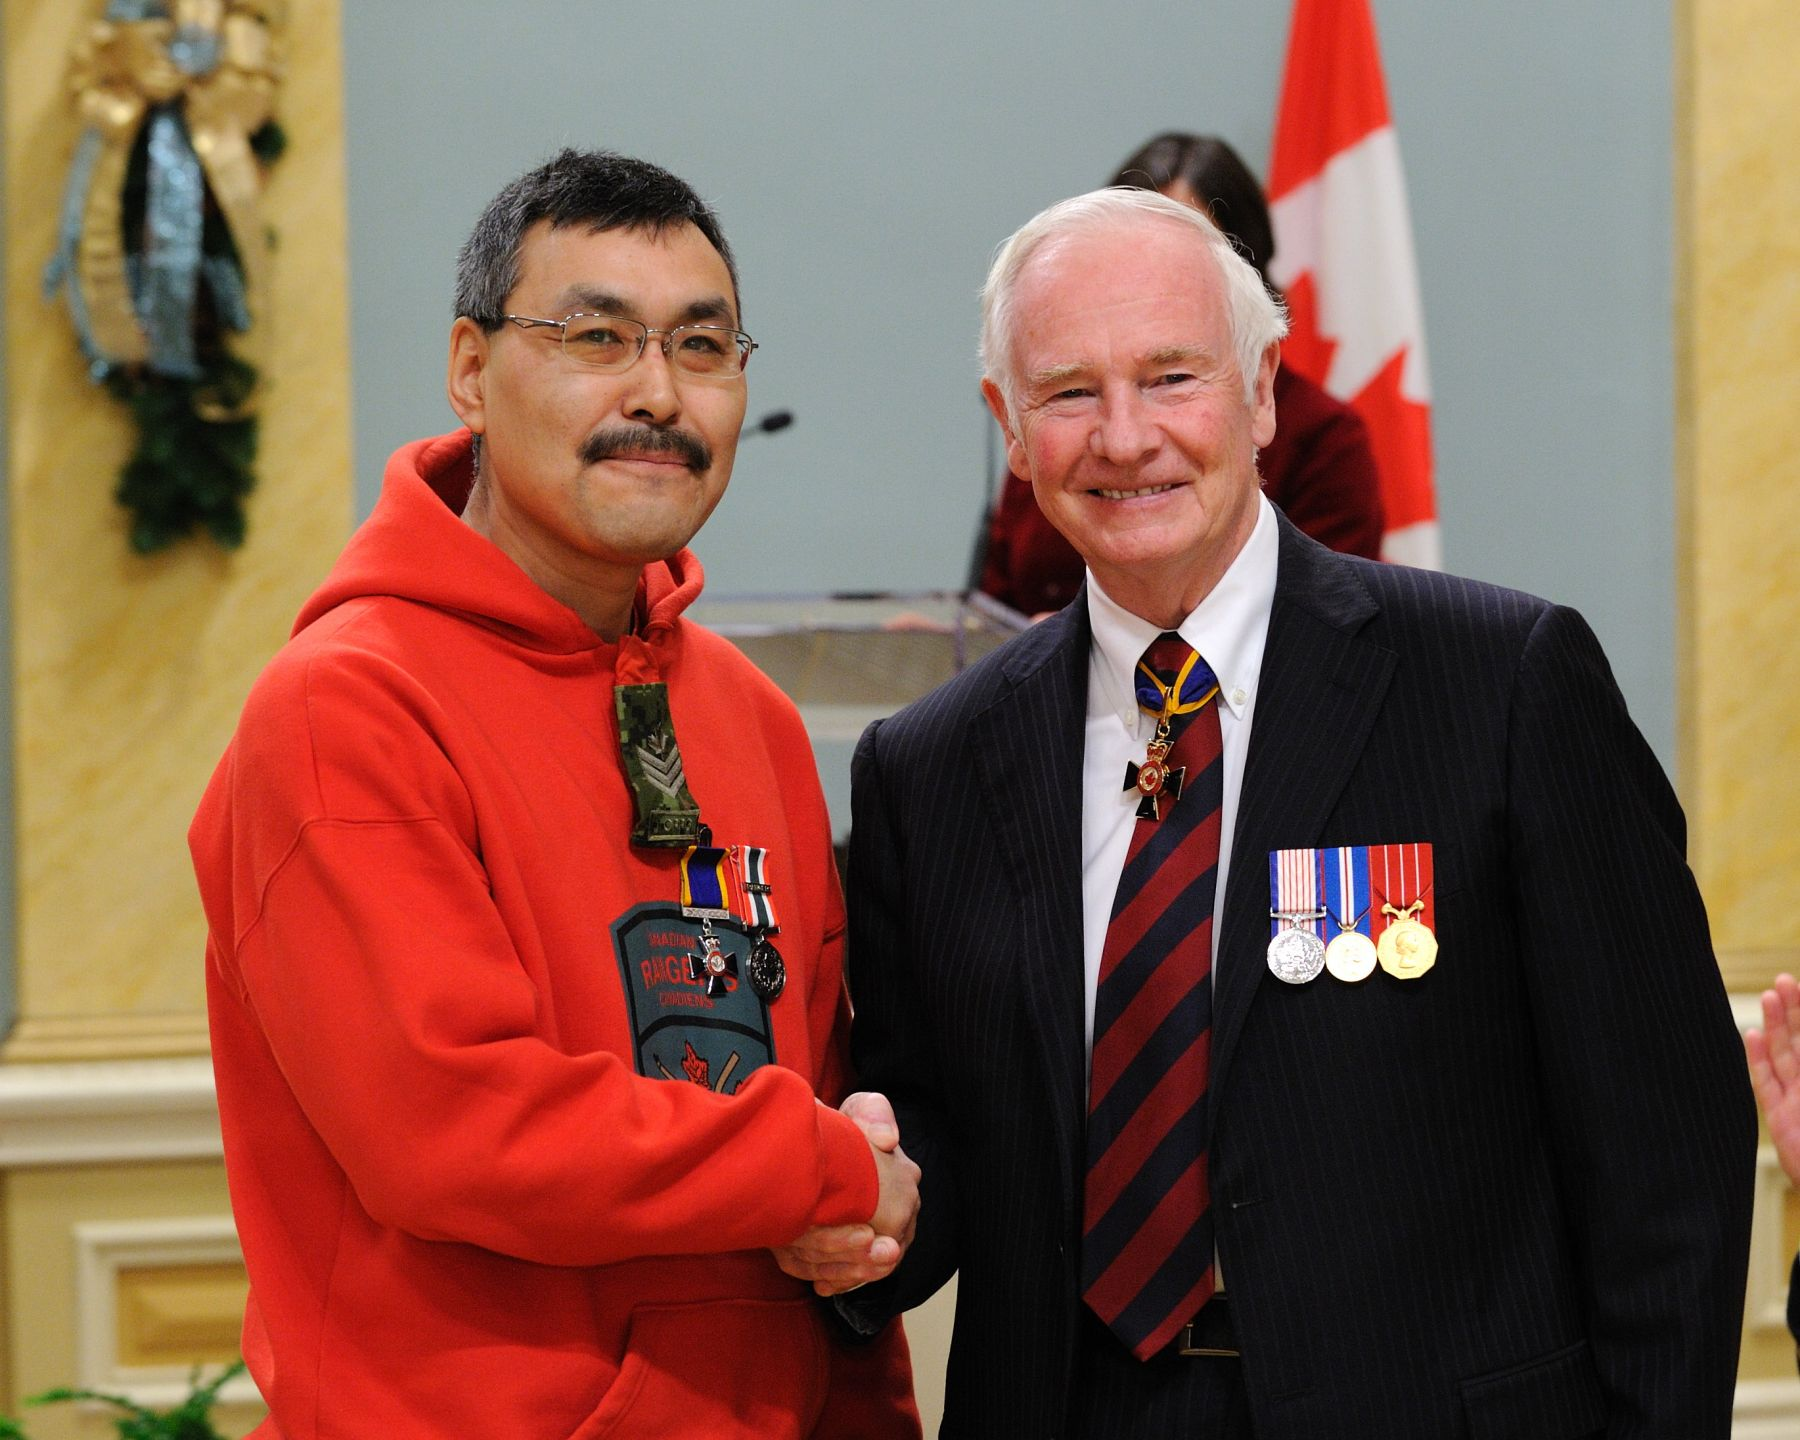 His Excellency presented the Order of Military Merit at the Member level (M.M.M.) to Sergeant Jorgan Aitaok Jr., M.M.M., 1st Canadian Ranger Patrol Group, Yellowknife, Northwest Territories.